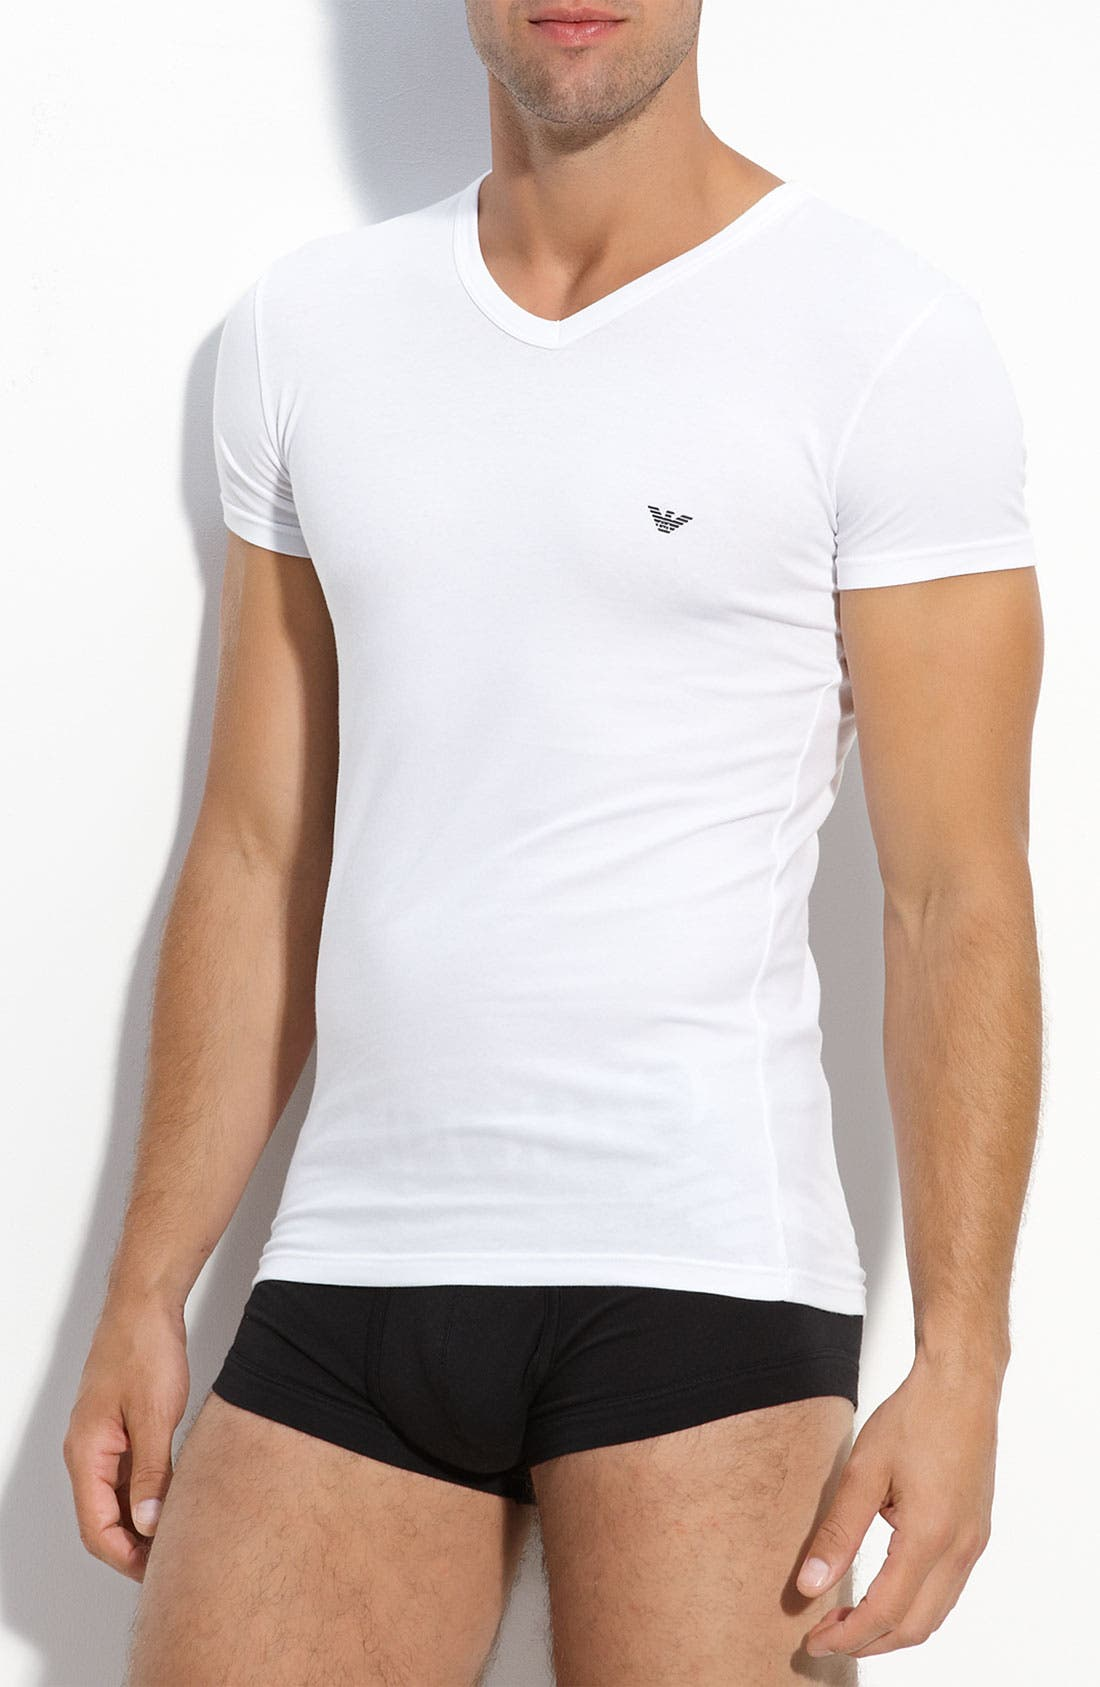 Alternate Image 1 Selected - Emporio Armani 'Eagle' V-Neck T-Shirt